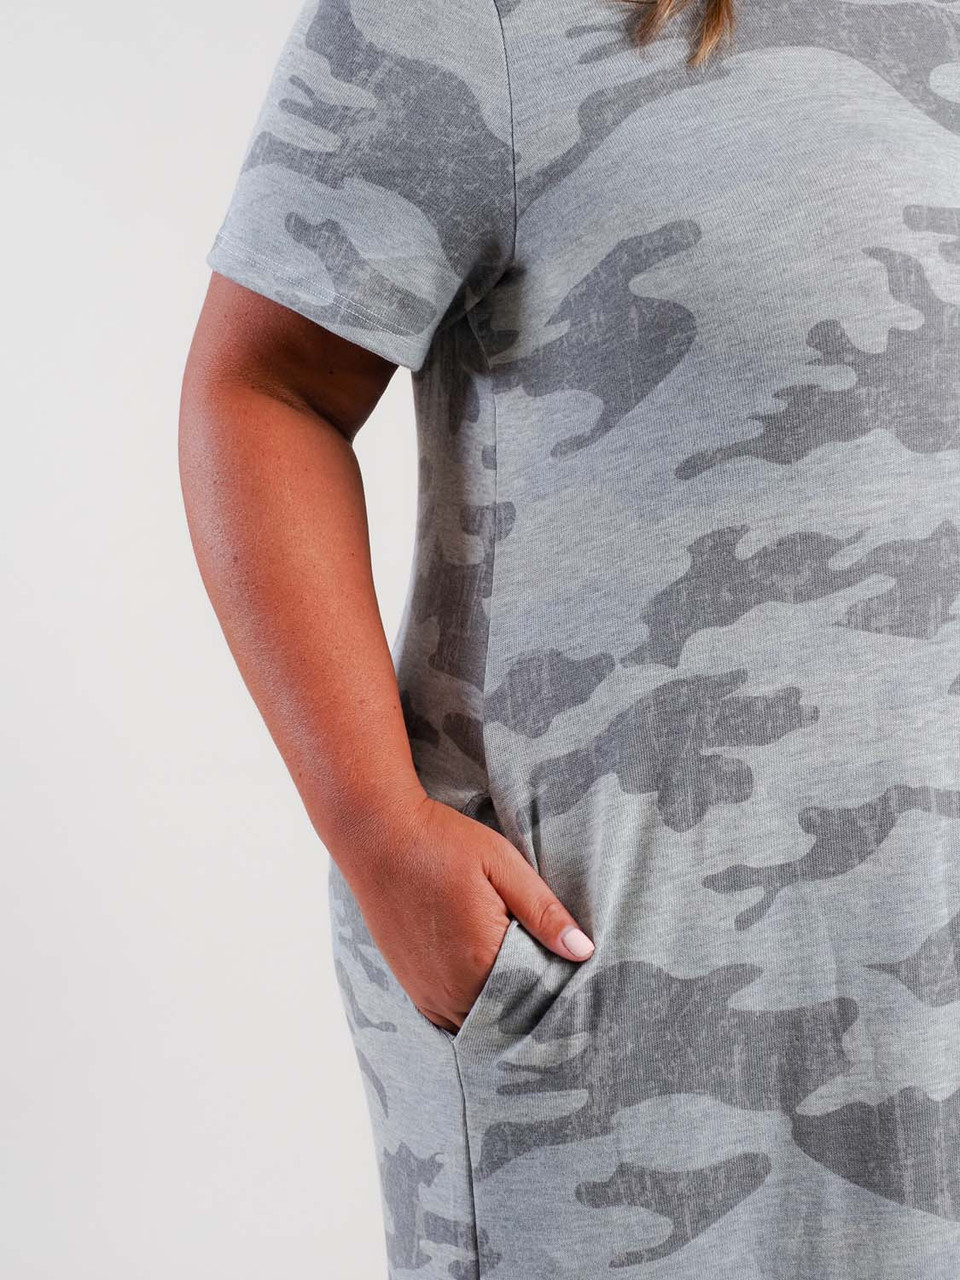 Soft light weight t-shirt dress with gray camo design. Round colar, short sleeves, side pockets at seams, and rounded t-shirt cut at bottom